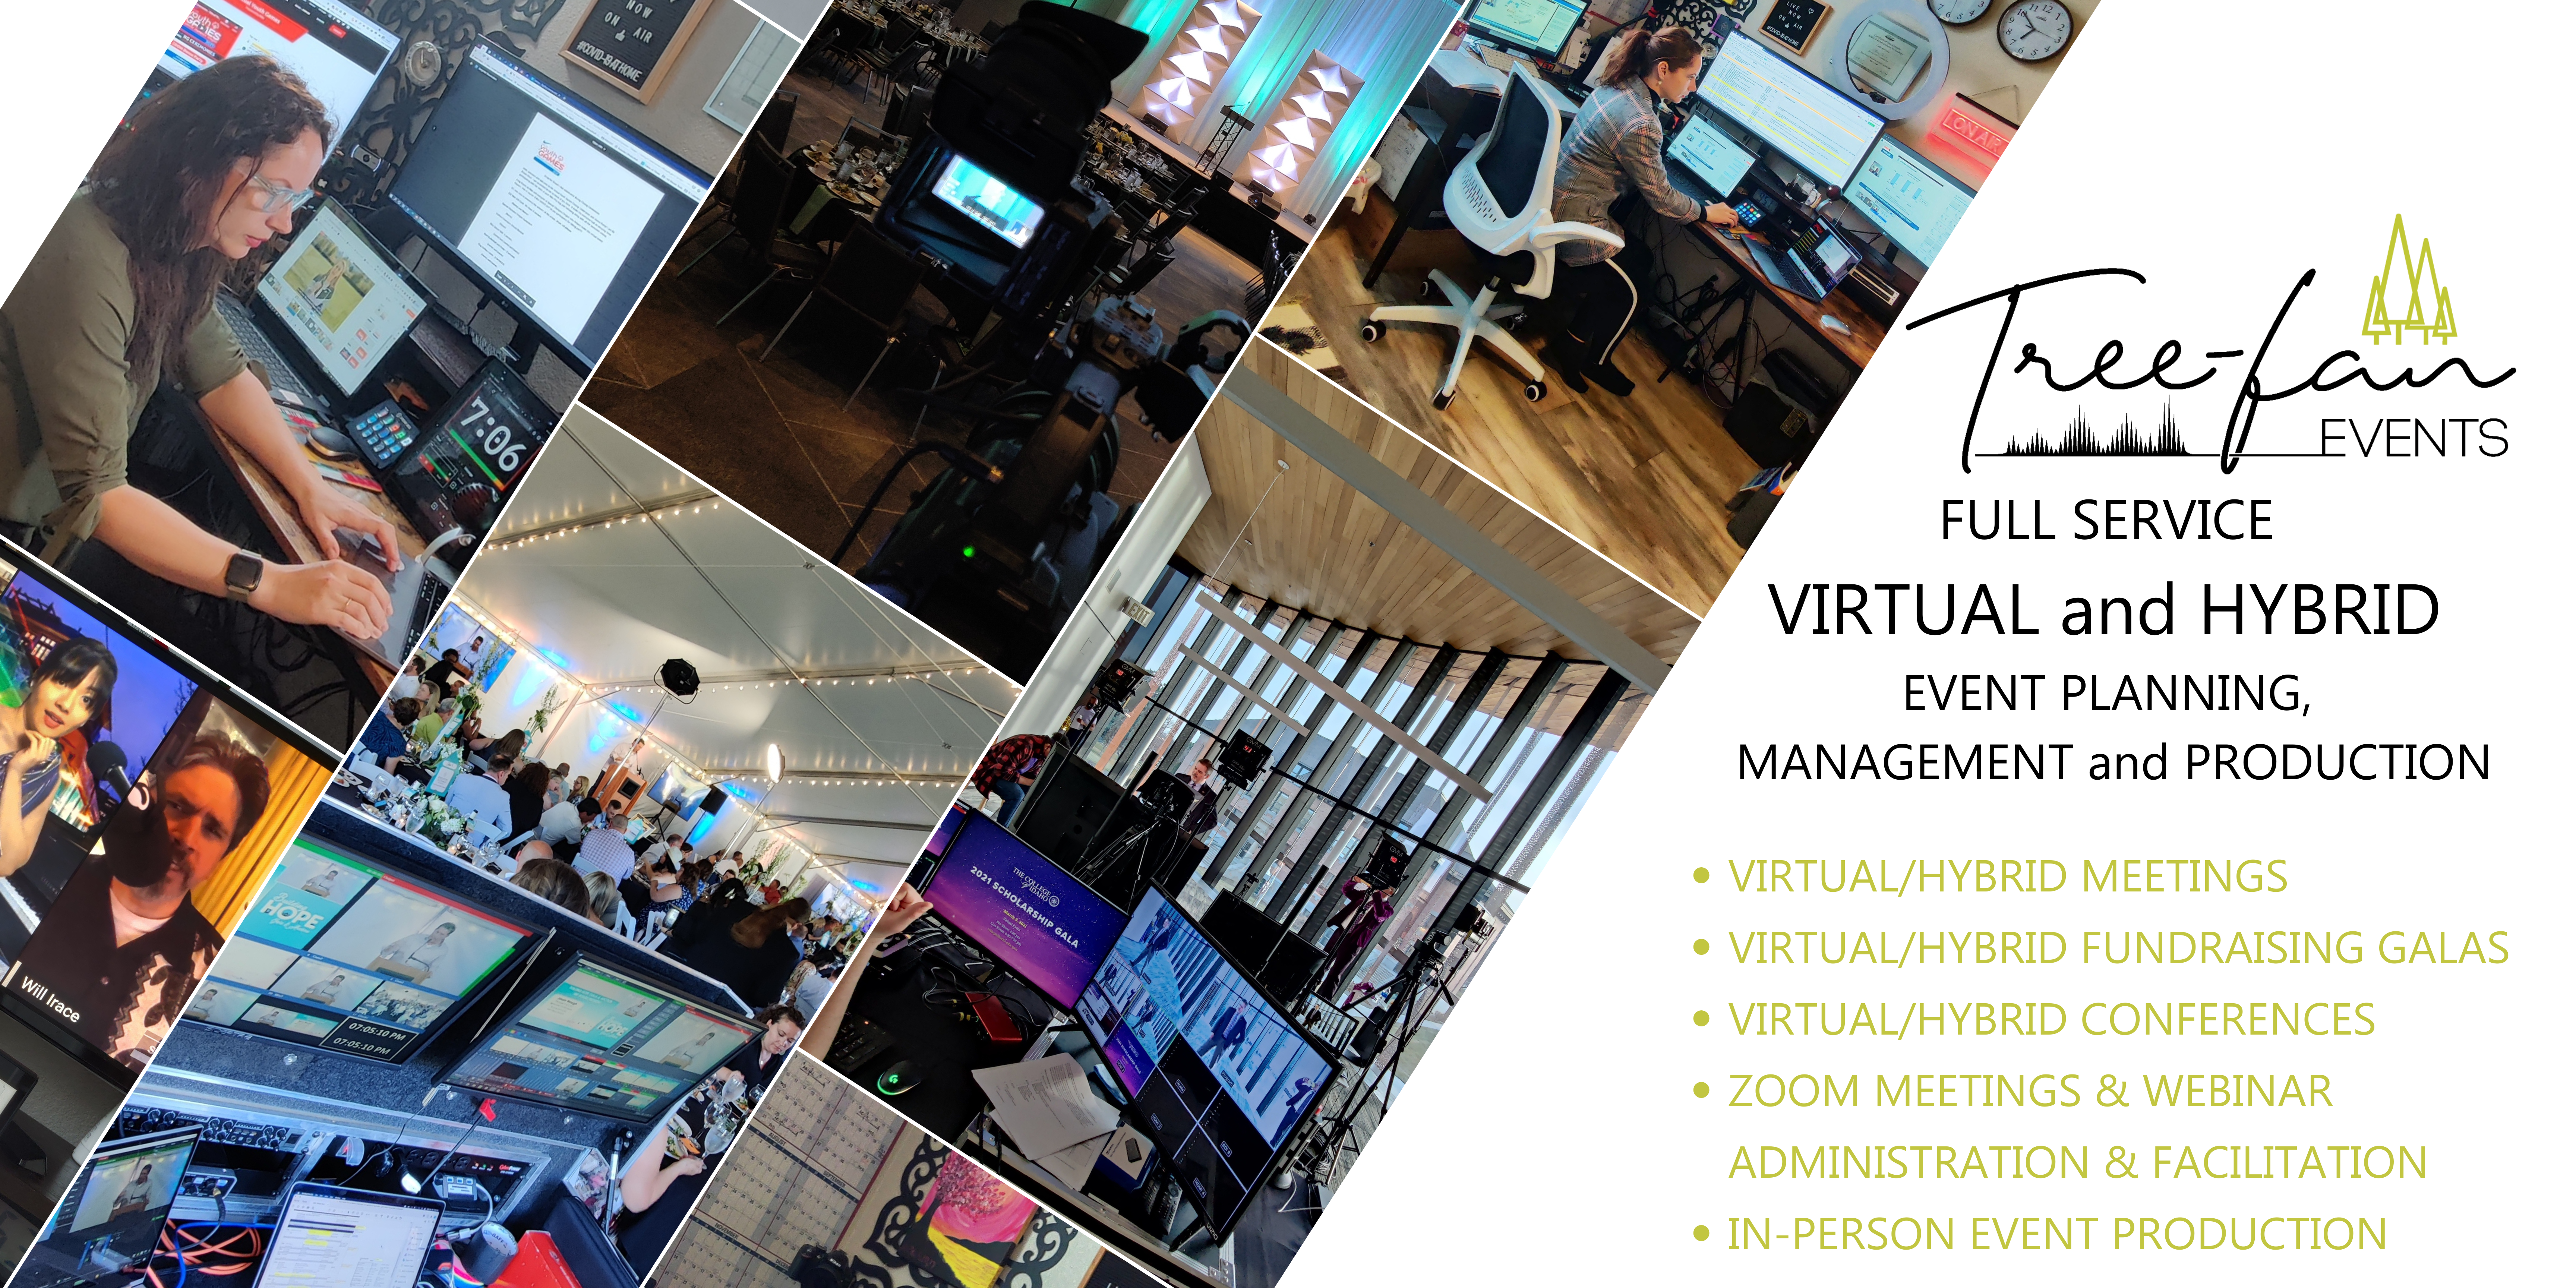 full services virtual and hybrid_treefan events